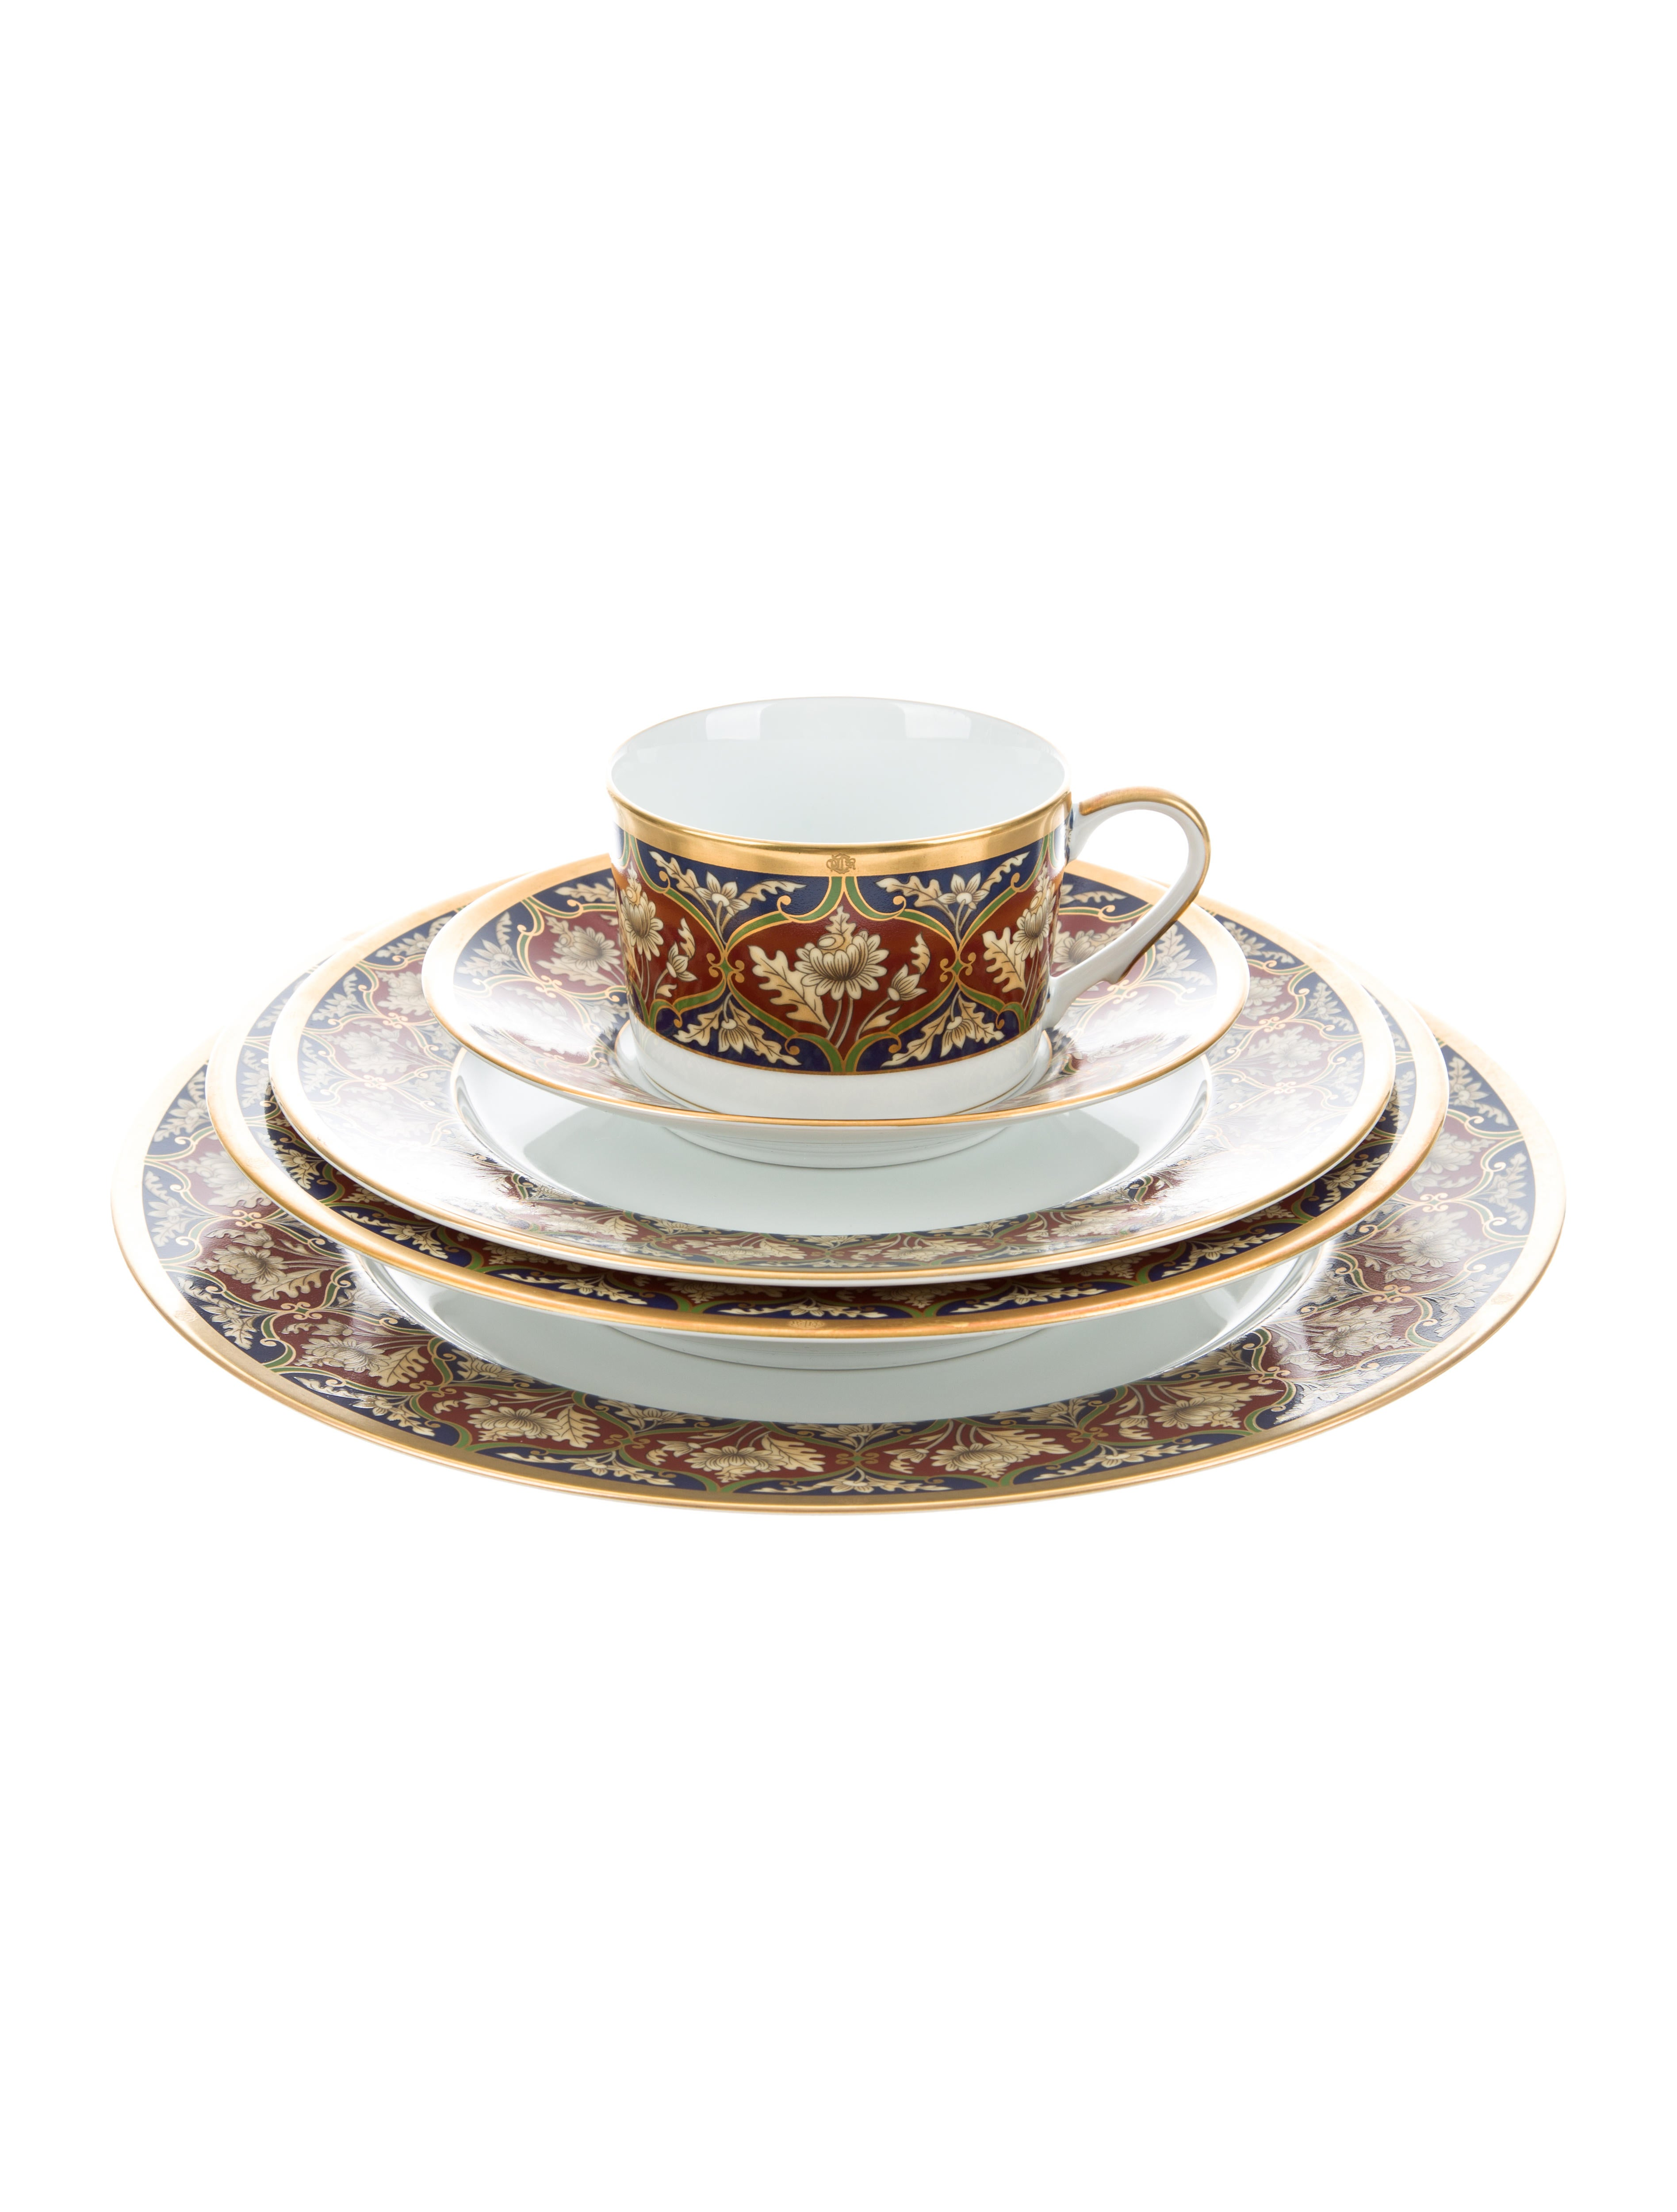 56-Piece Tabriz Partial-Table Service  sc 1 st  The RealReal & Christian Dior 56-Piece Tabriz Partial-Table Service - Tabletop And ...